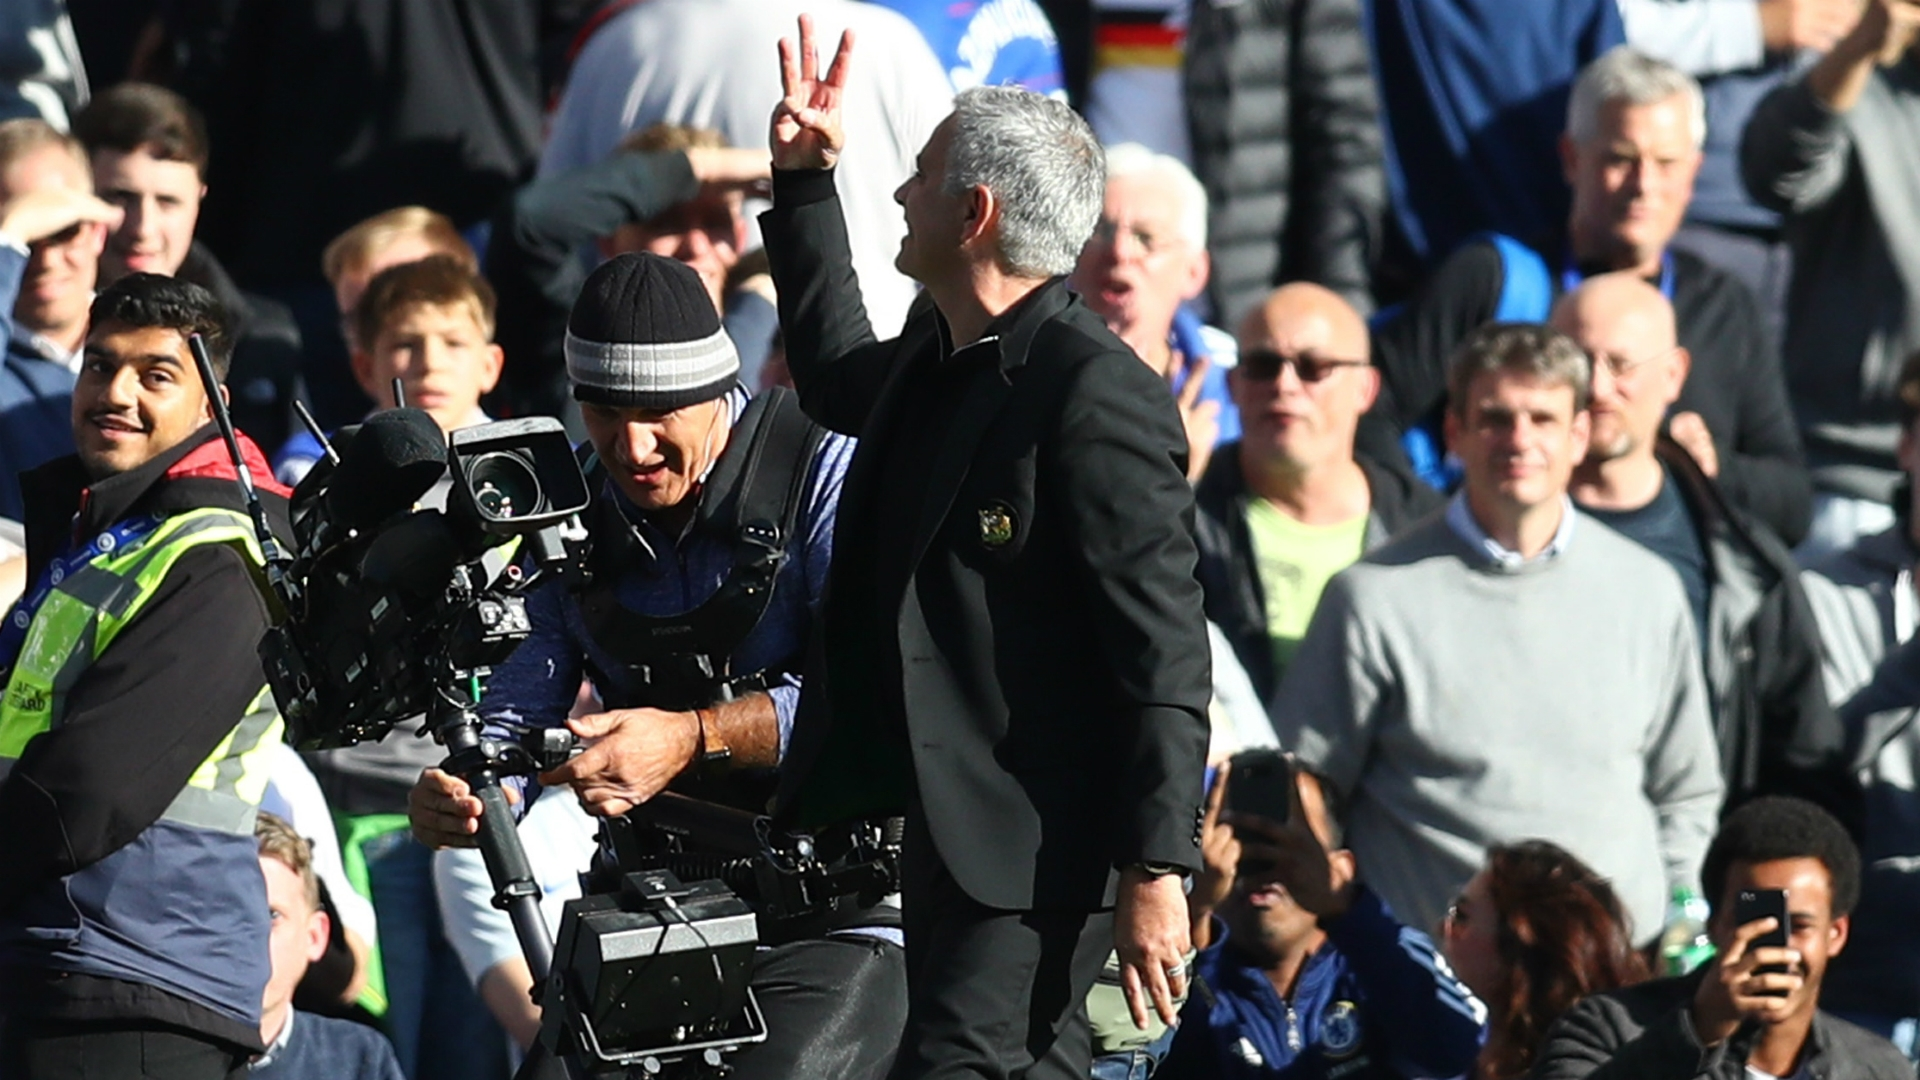 Jose Mourinho angered after the 2-2 draw between Chelsea and Manchester United